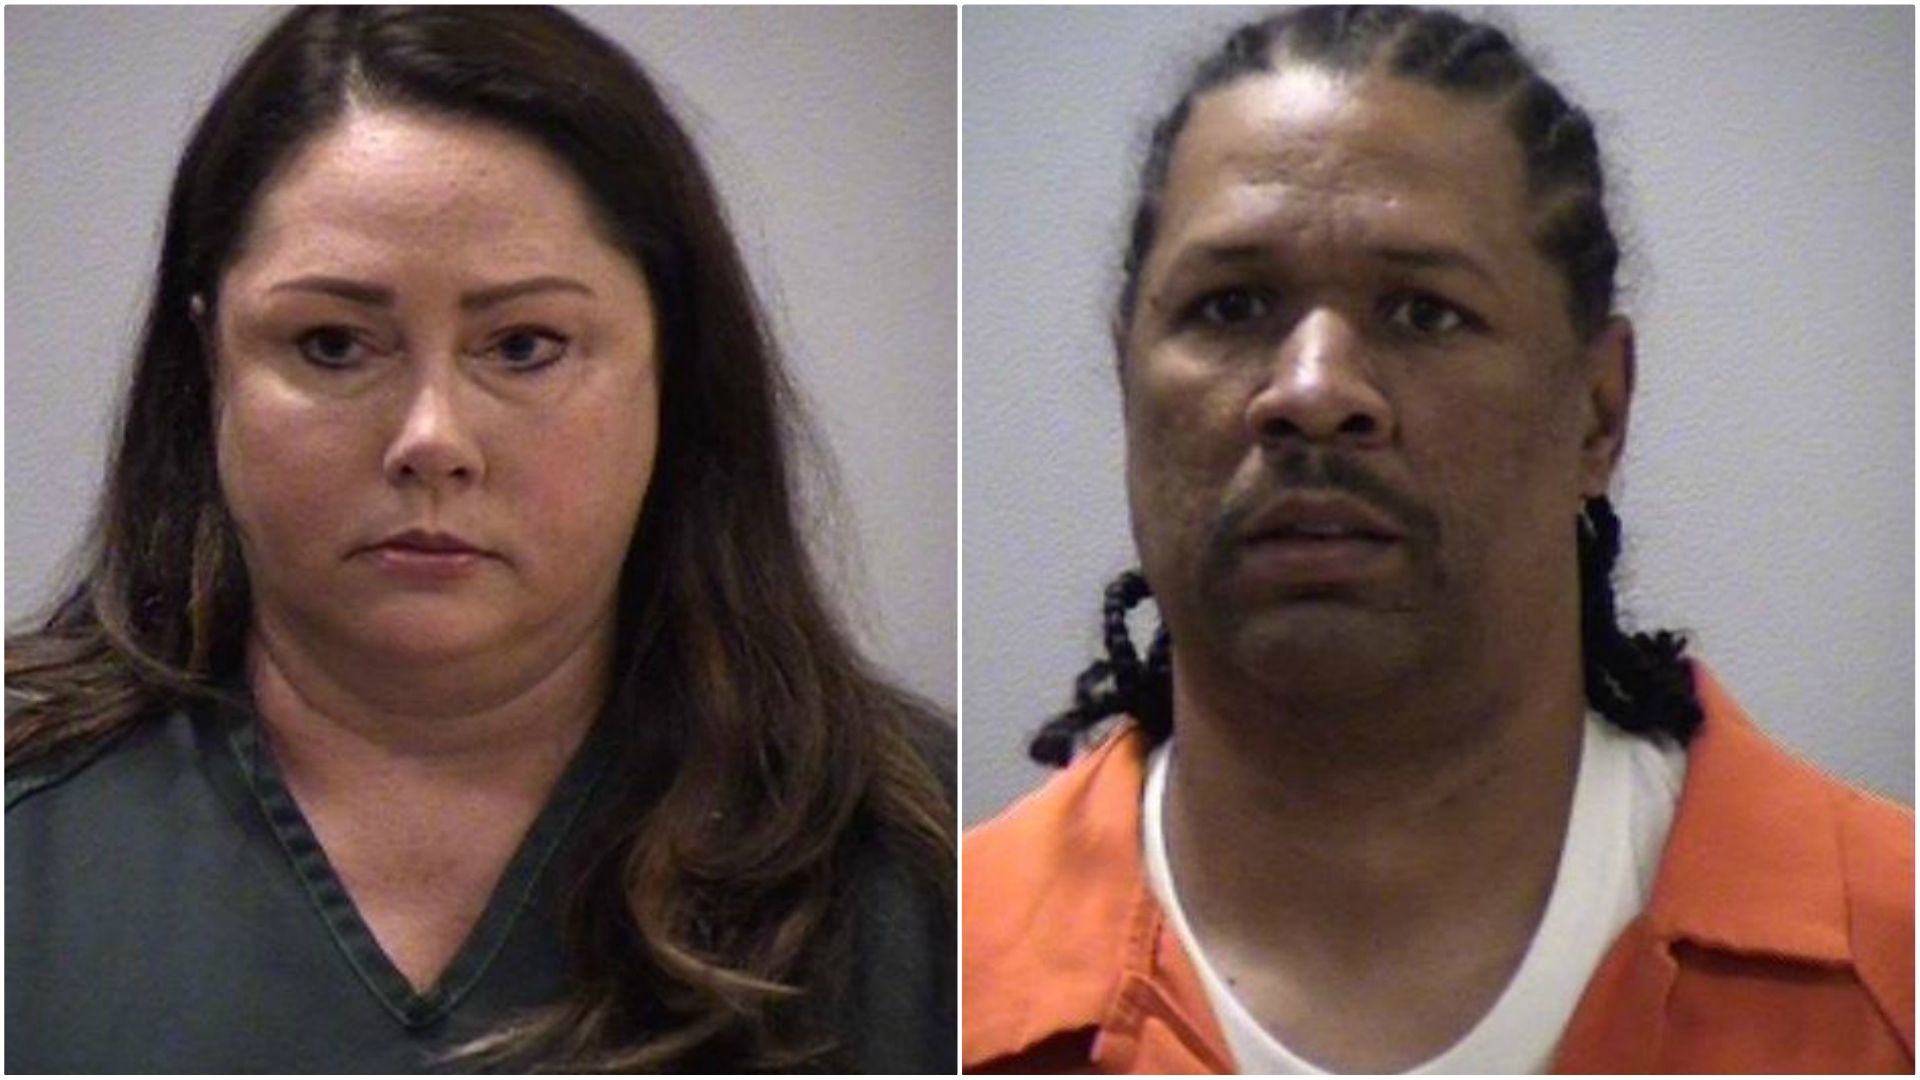 The booking photos of Heather McLogan and Michael Mosley.